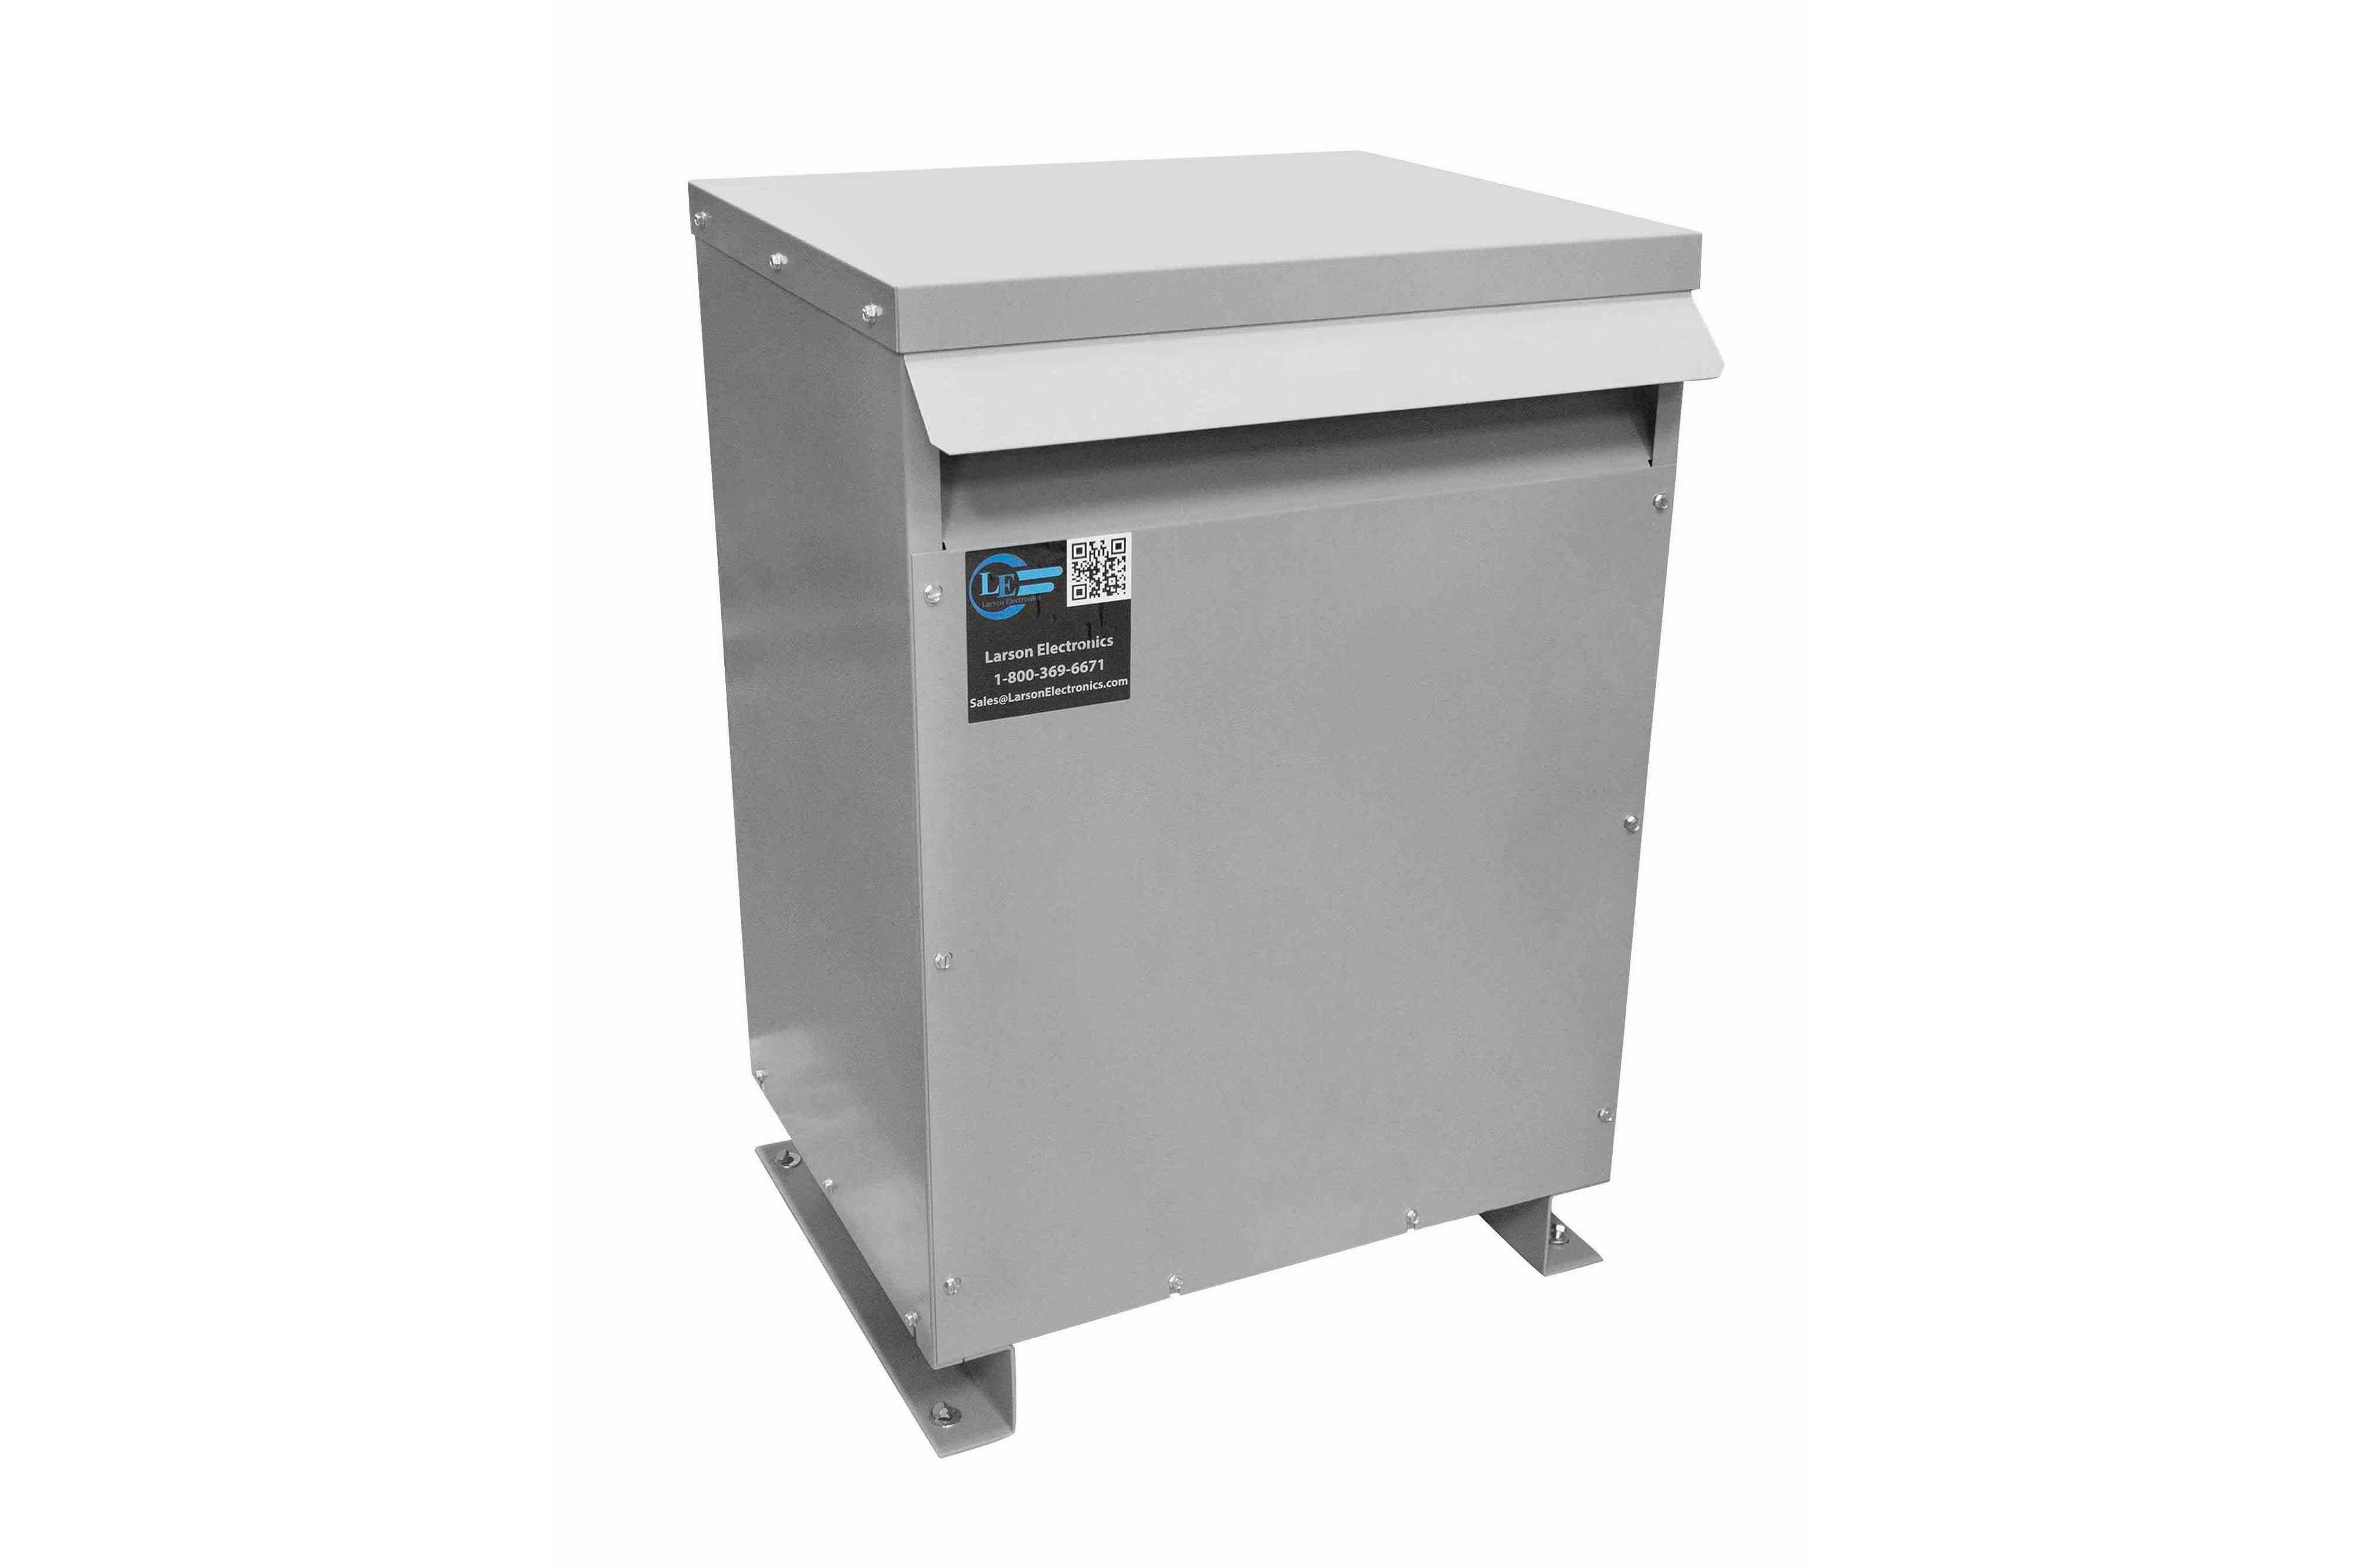 175 kVA 3PH Isolation Transformer, 480V Delta Primary, 380V Delta Secondary, N3R, Ventilated, 60 Hz